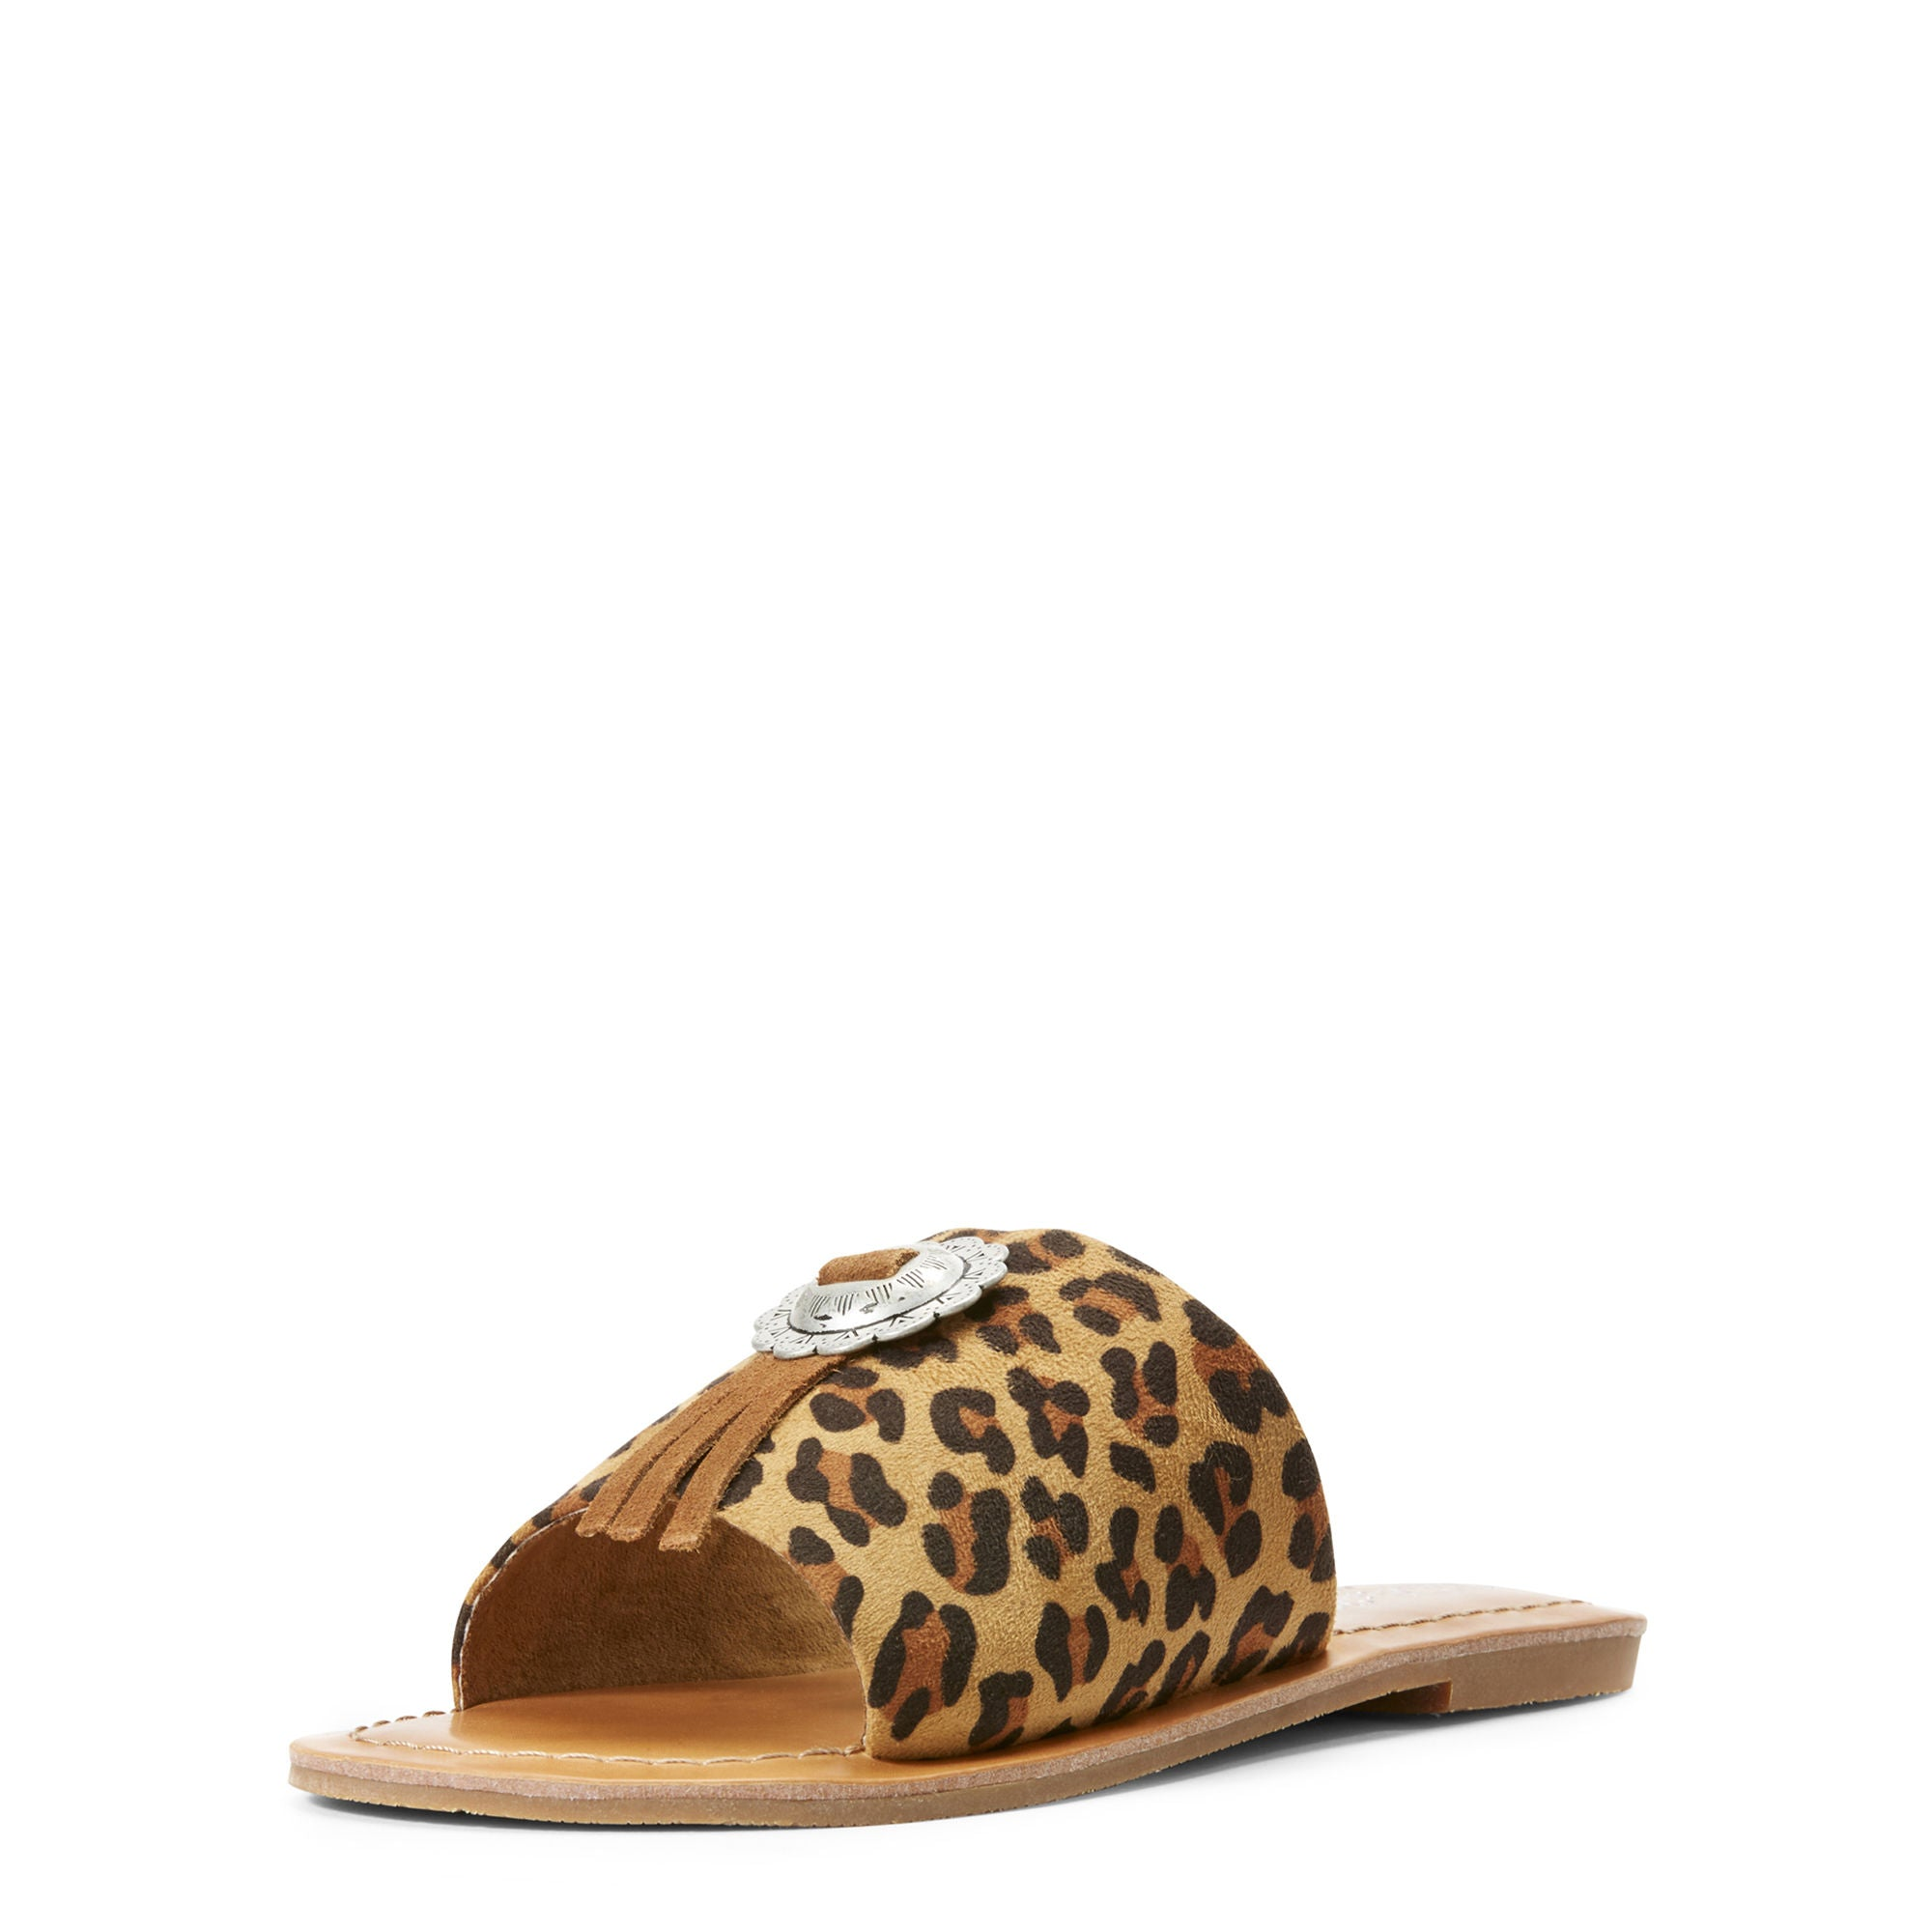 Ariat Women's Unbridled Ellie Leopard Sandals